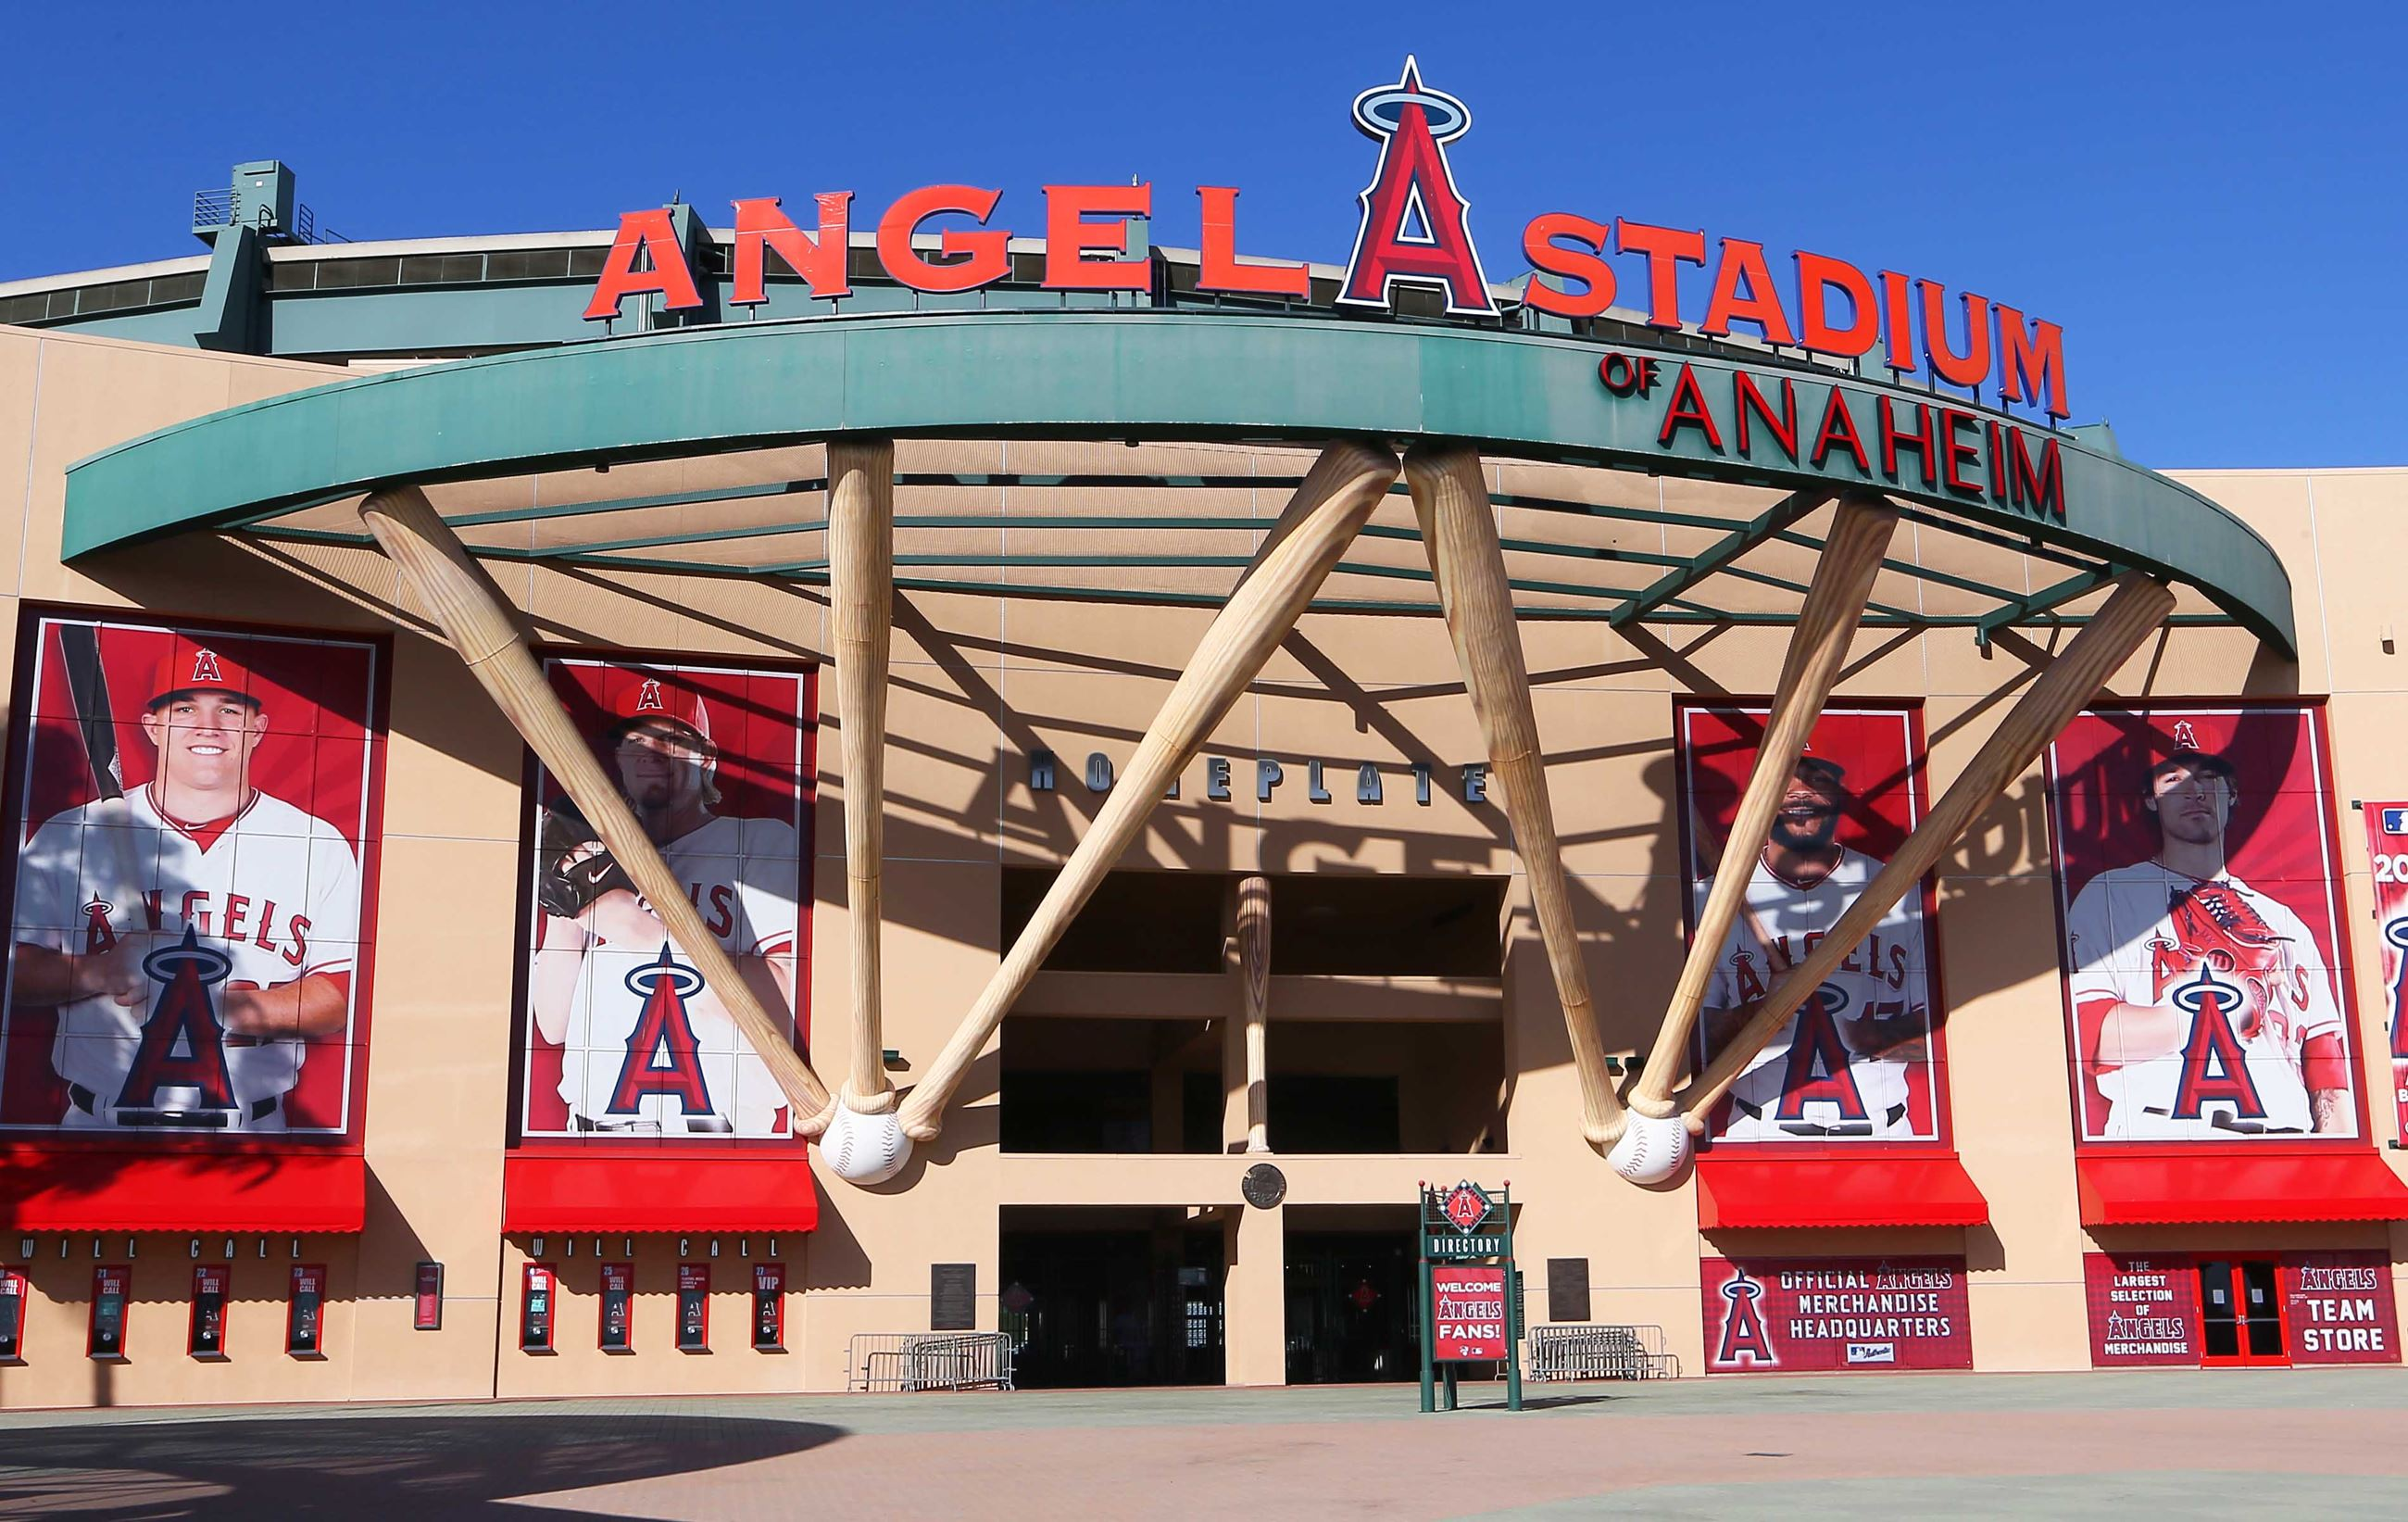 ce27e143532 10, 2019) — Anaheim's City Council on Tuesday is set to consider a one-year  stadium lease extension for Angels Baseball initiated by Mayor Harry Sidhu  ...